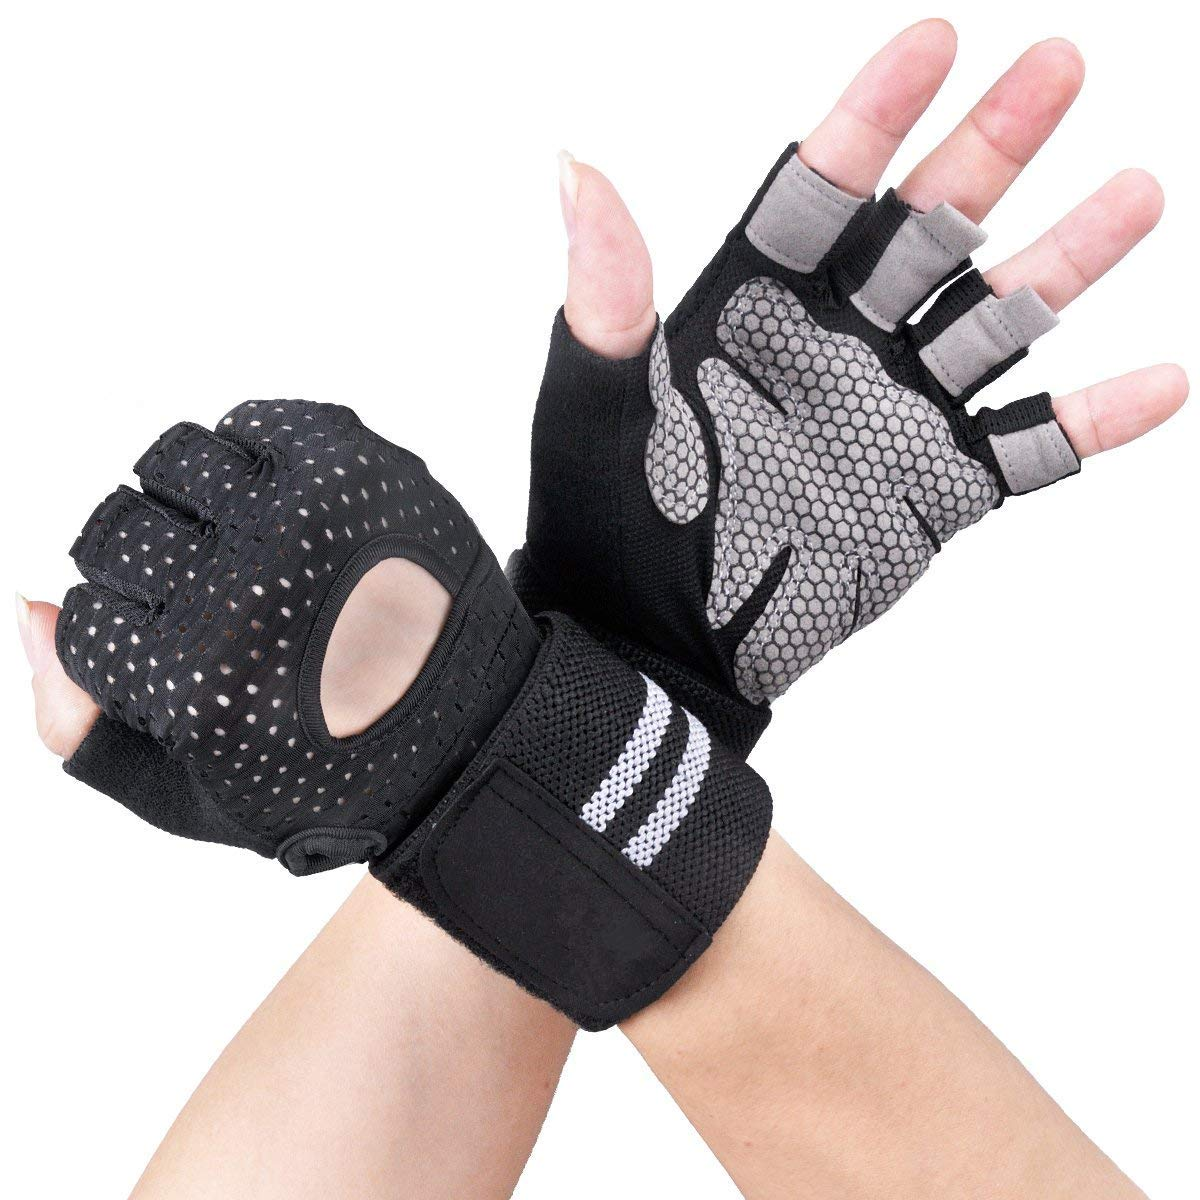 Breathable Ultralight Weight Lifting Sport Gloves, Gym Workout Exercise Gloves with Wrist Wrap Support for Powerlifting, Cross Training, Fitness, Bodybuilding, Best for Men & Women (XL) by Dream Wings